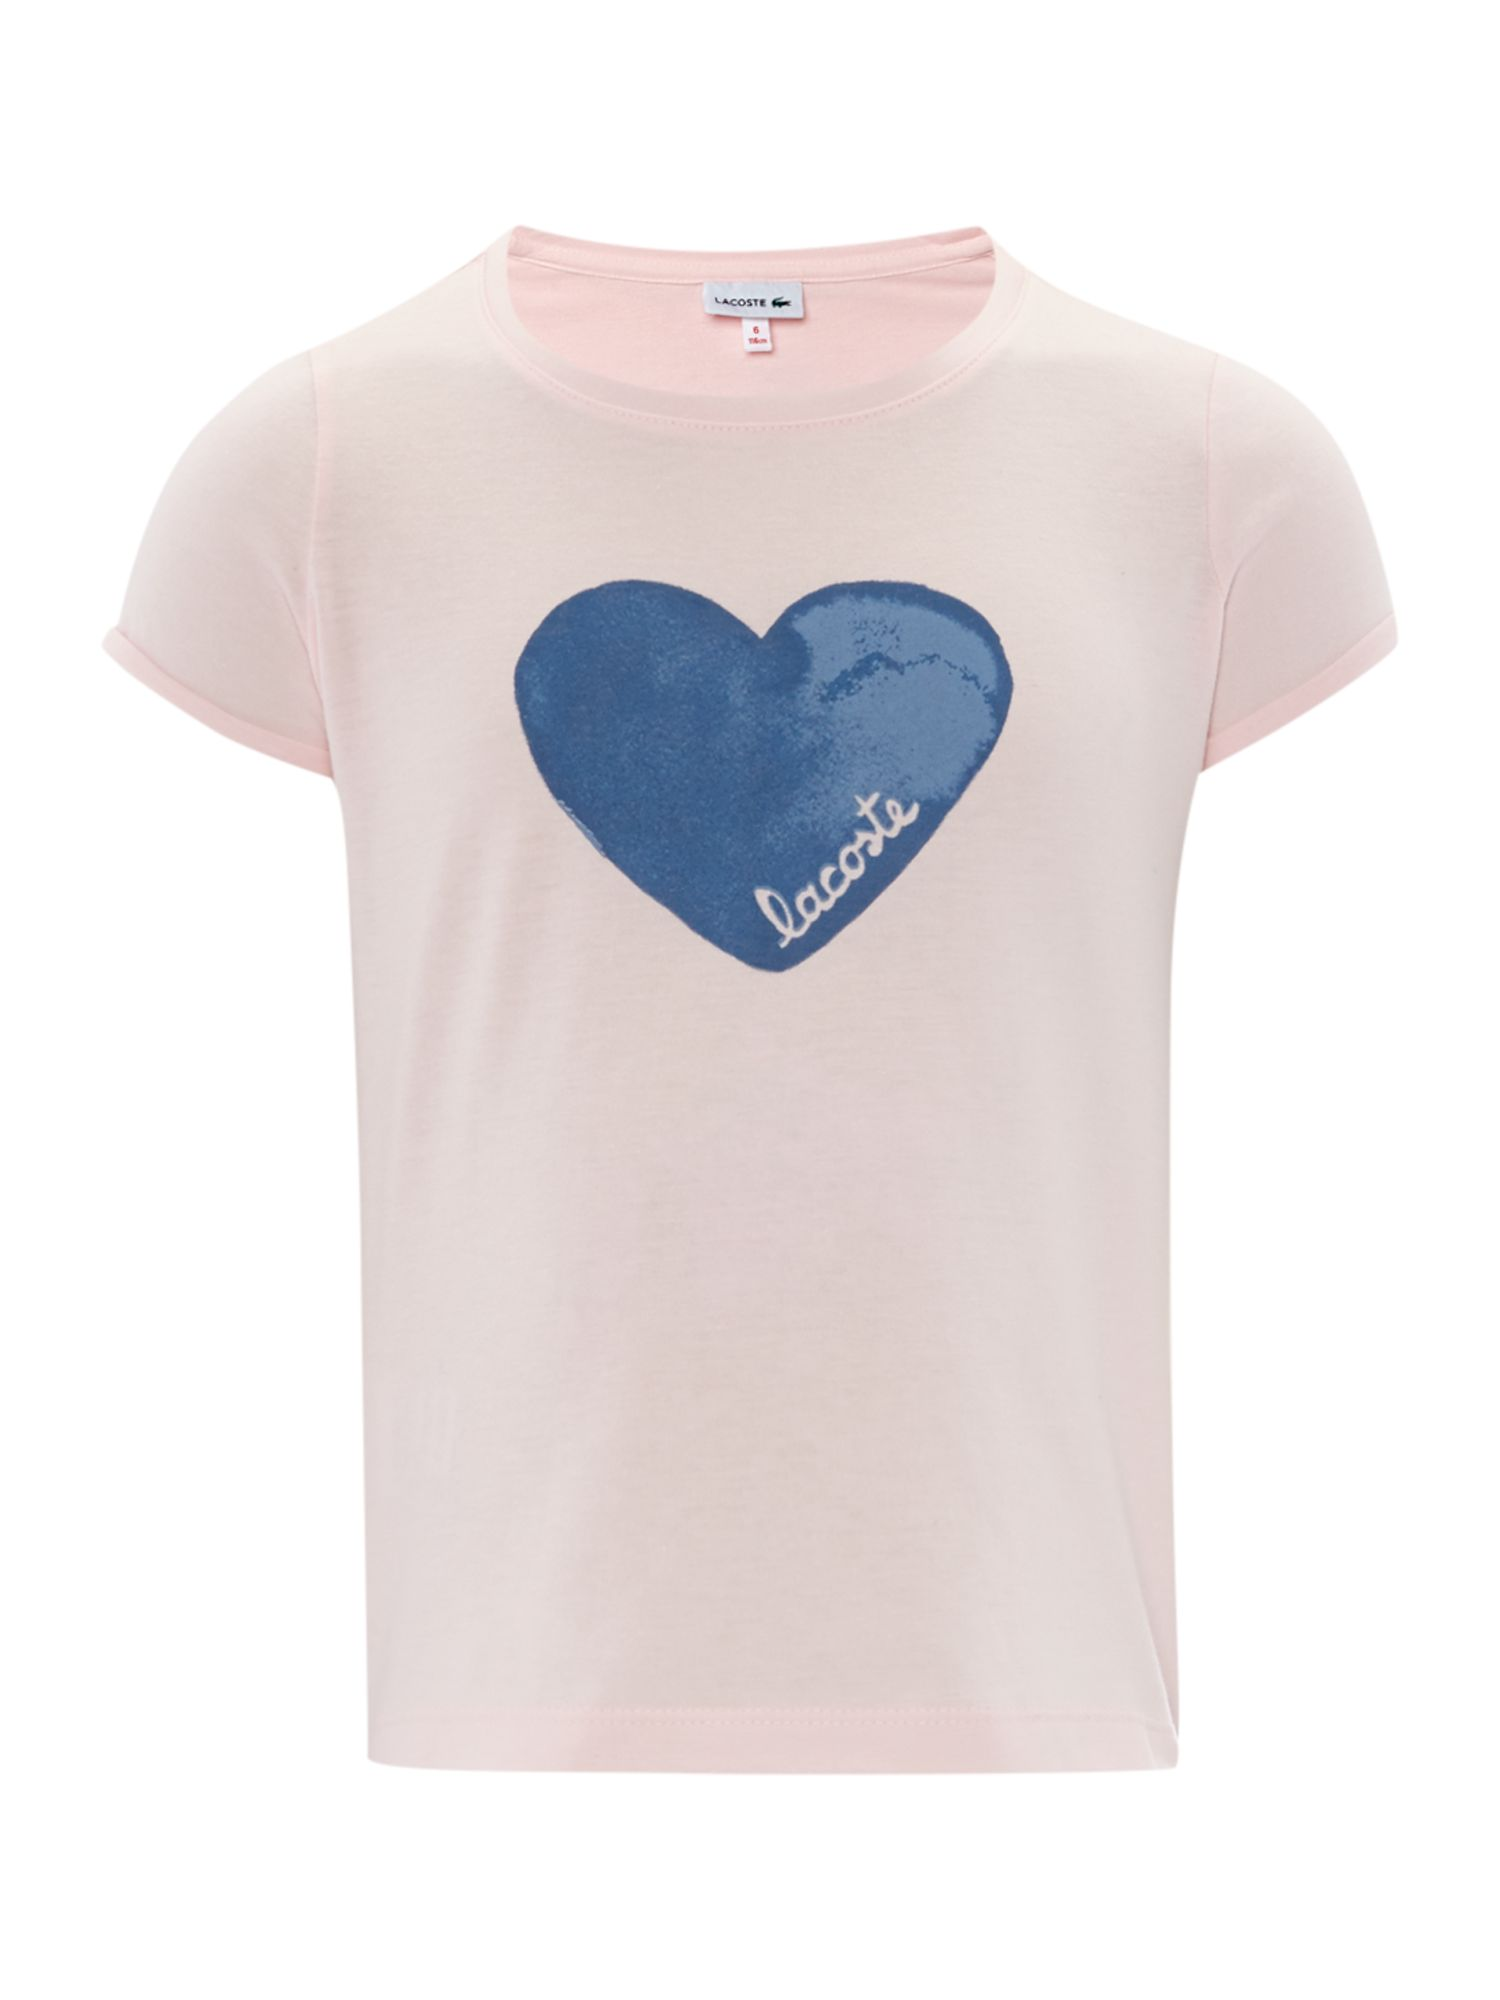 Girls heart print t-shirt